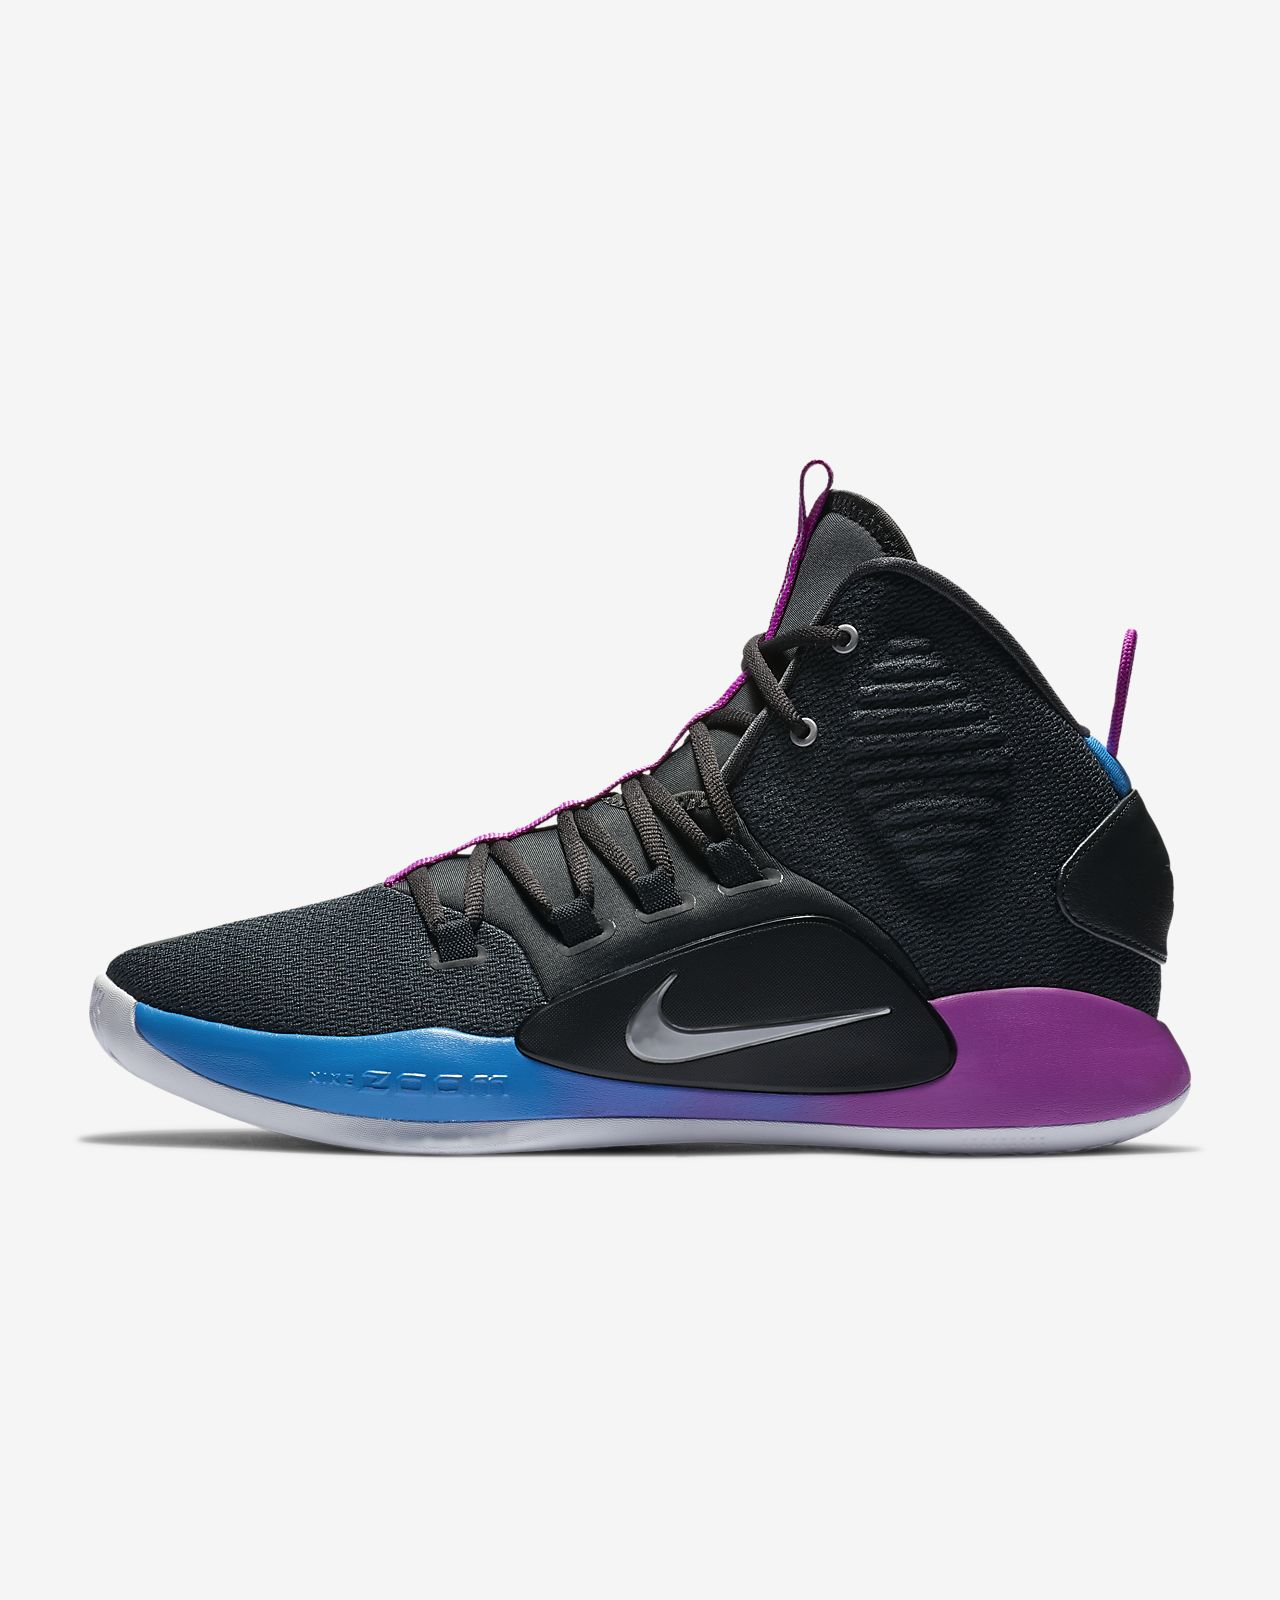 the latest d7a7b 2af4f Nike Hyperdunk X